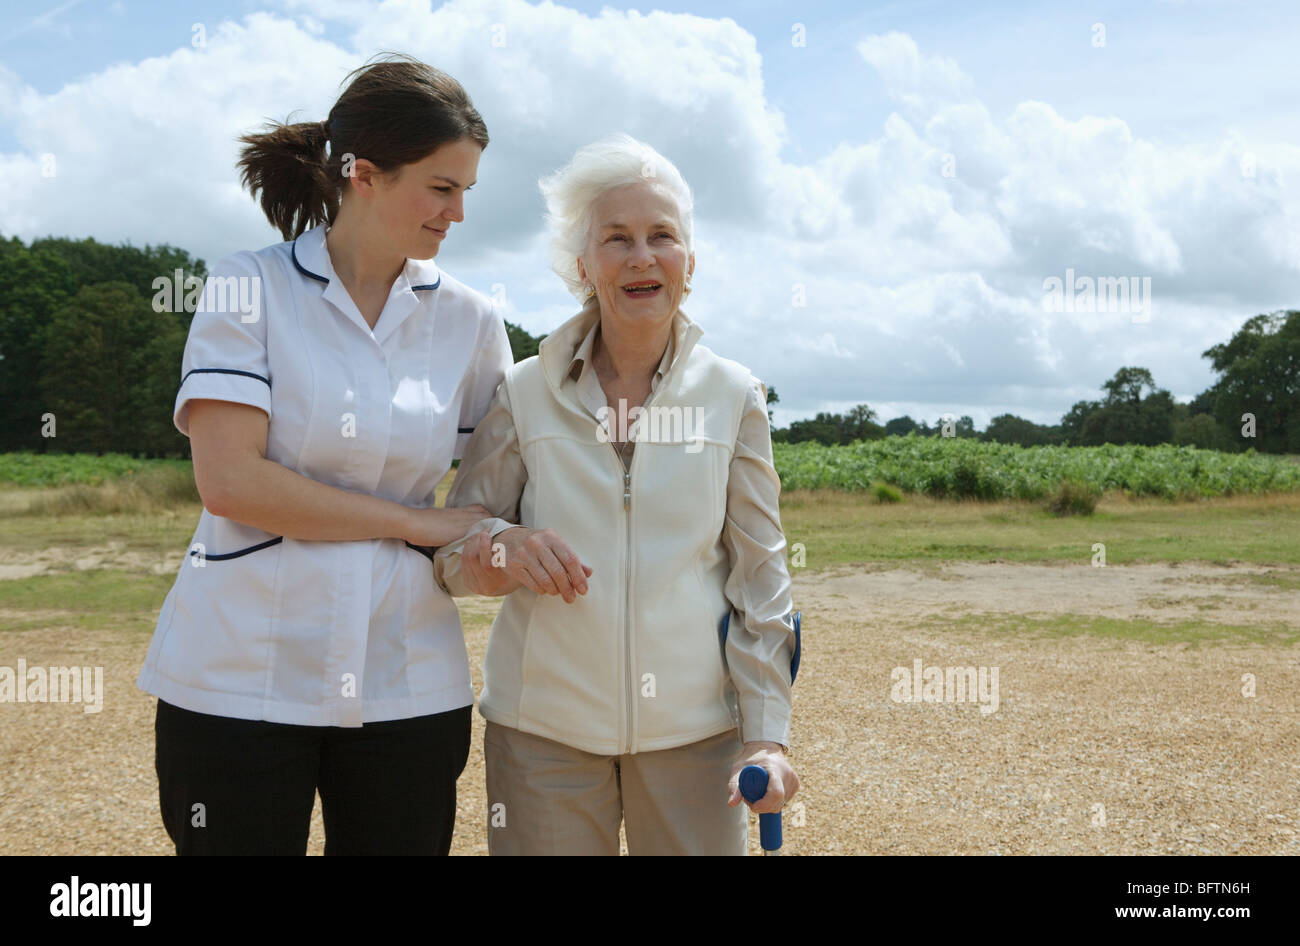 Elderly woman being supported by nurse - Stock Image